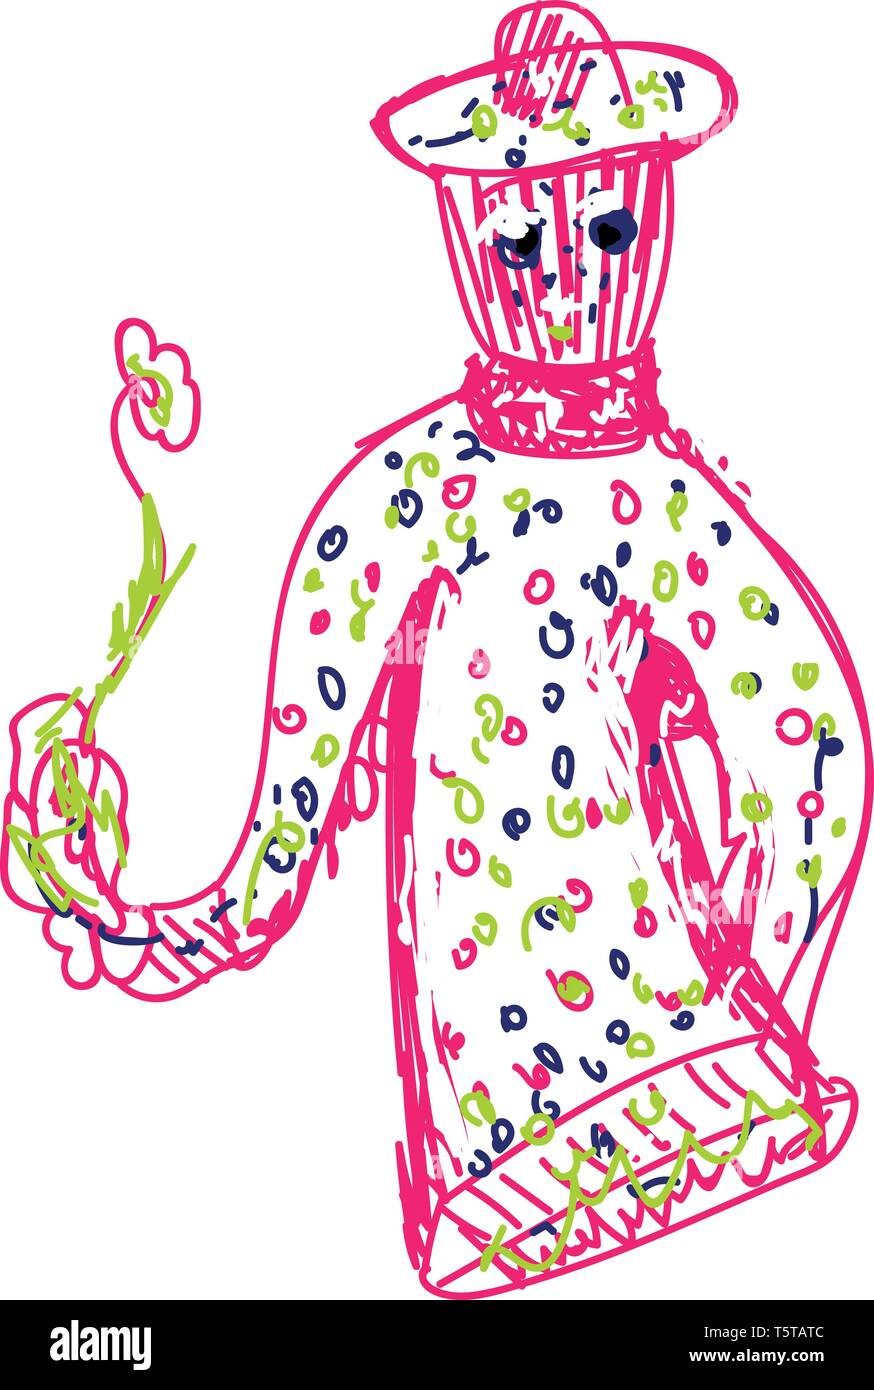 Pink-colored sketch of a joker toy holding a flower with green leaves vector color drawing or illustration - Stock Image